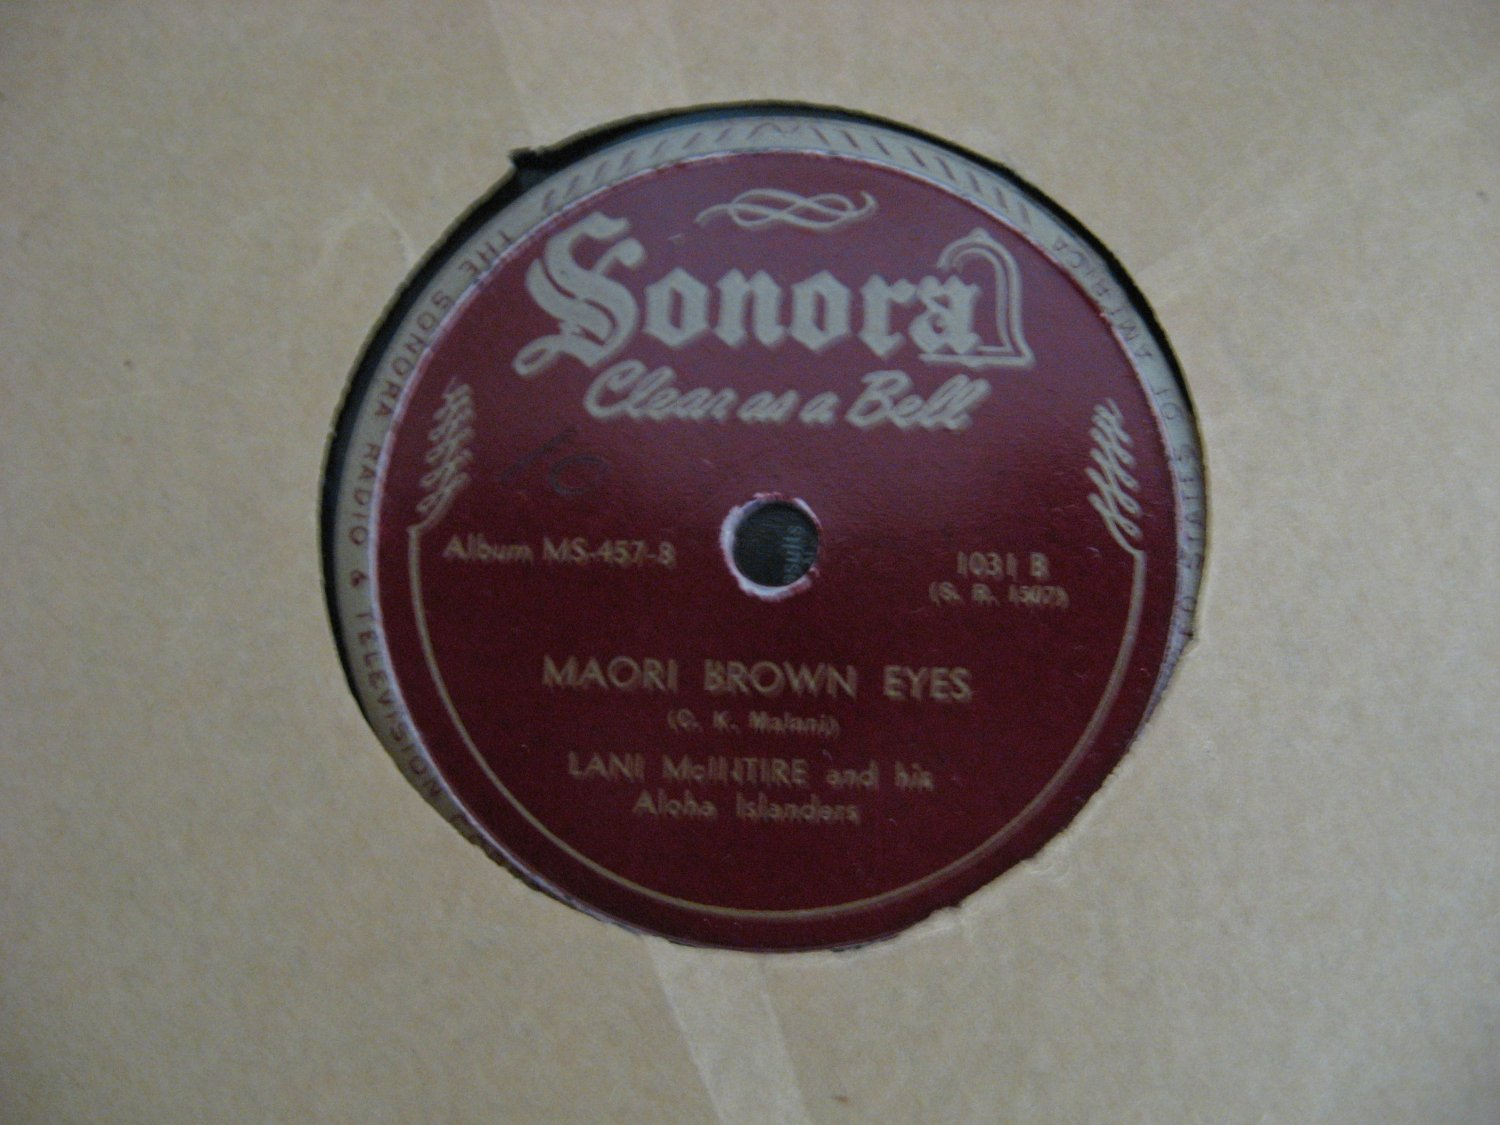 Lani McIntire - Isle Of Golden Dreams/Maori Brown Eyes - 1944  (Vinyl Records)